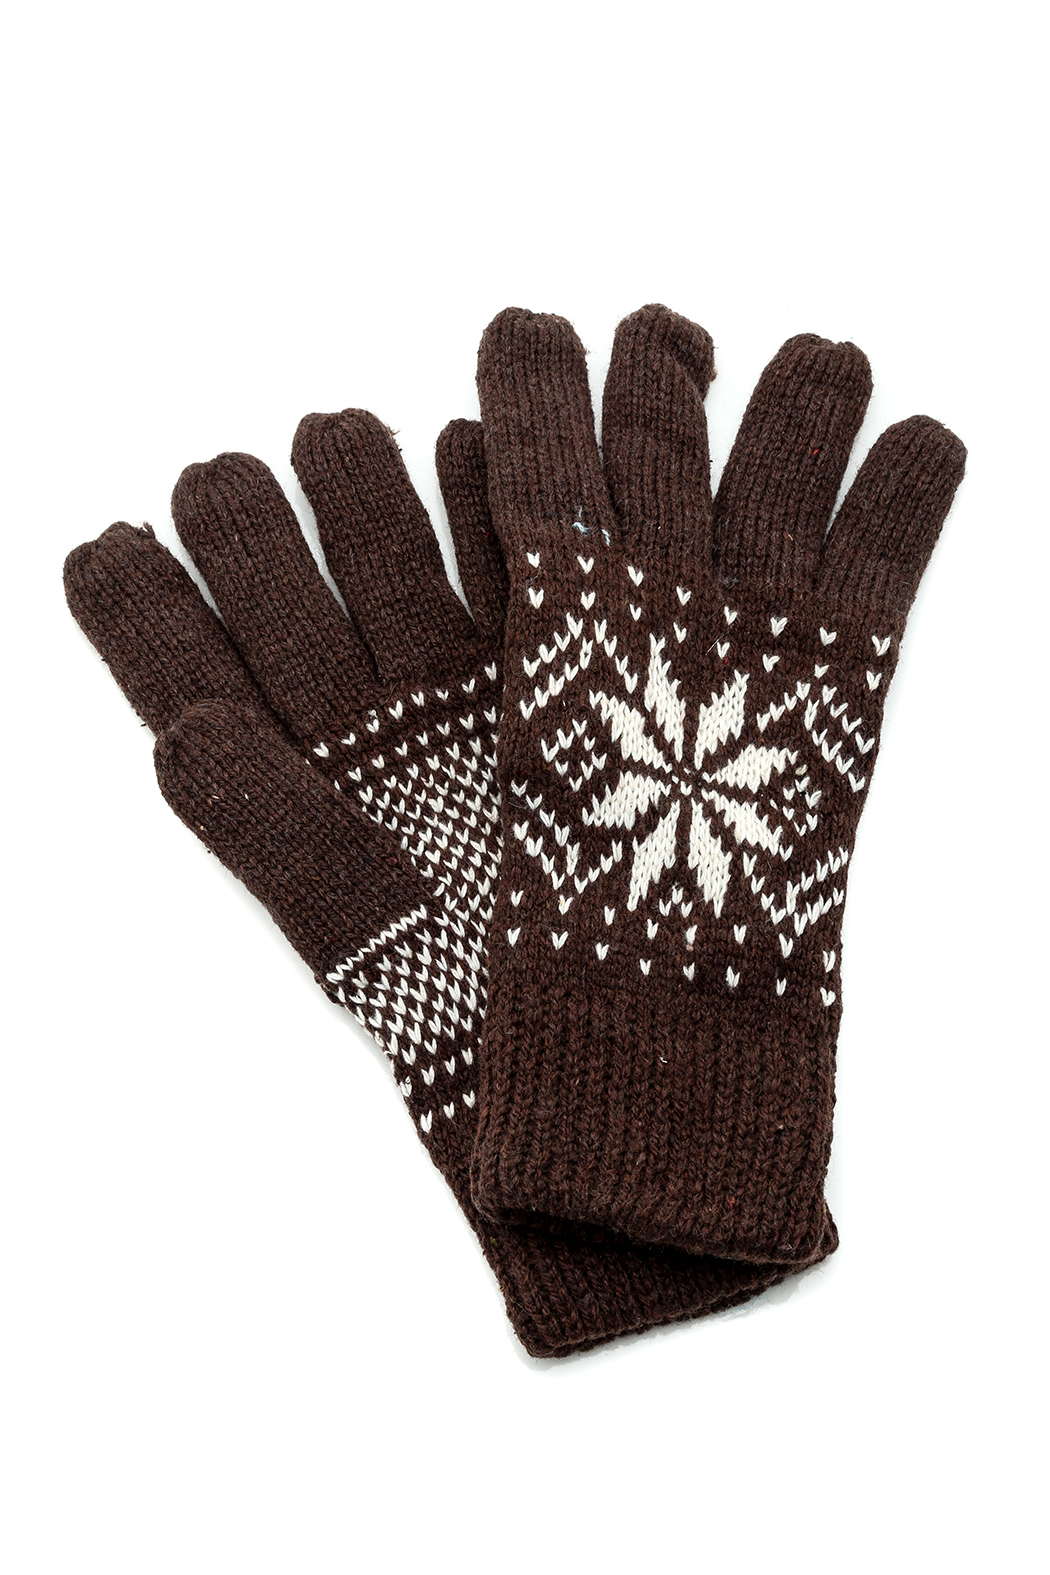 Fort Greene General Store Knit Snowflake Gloves - Main Image